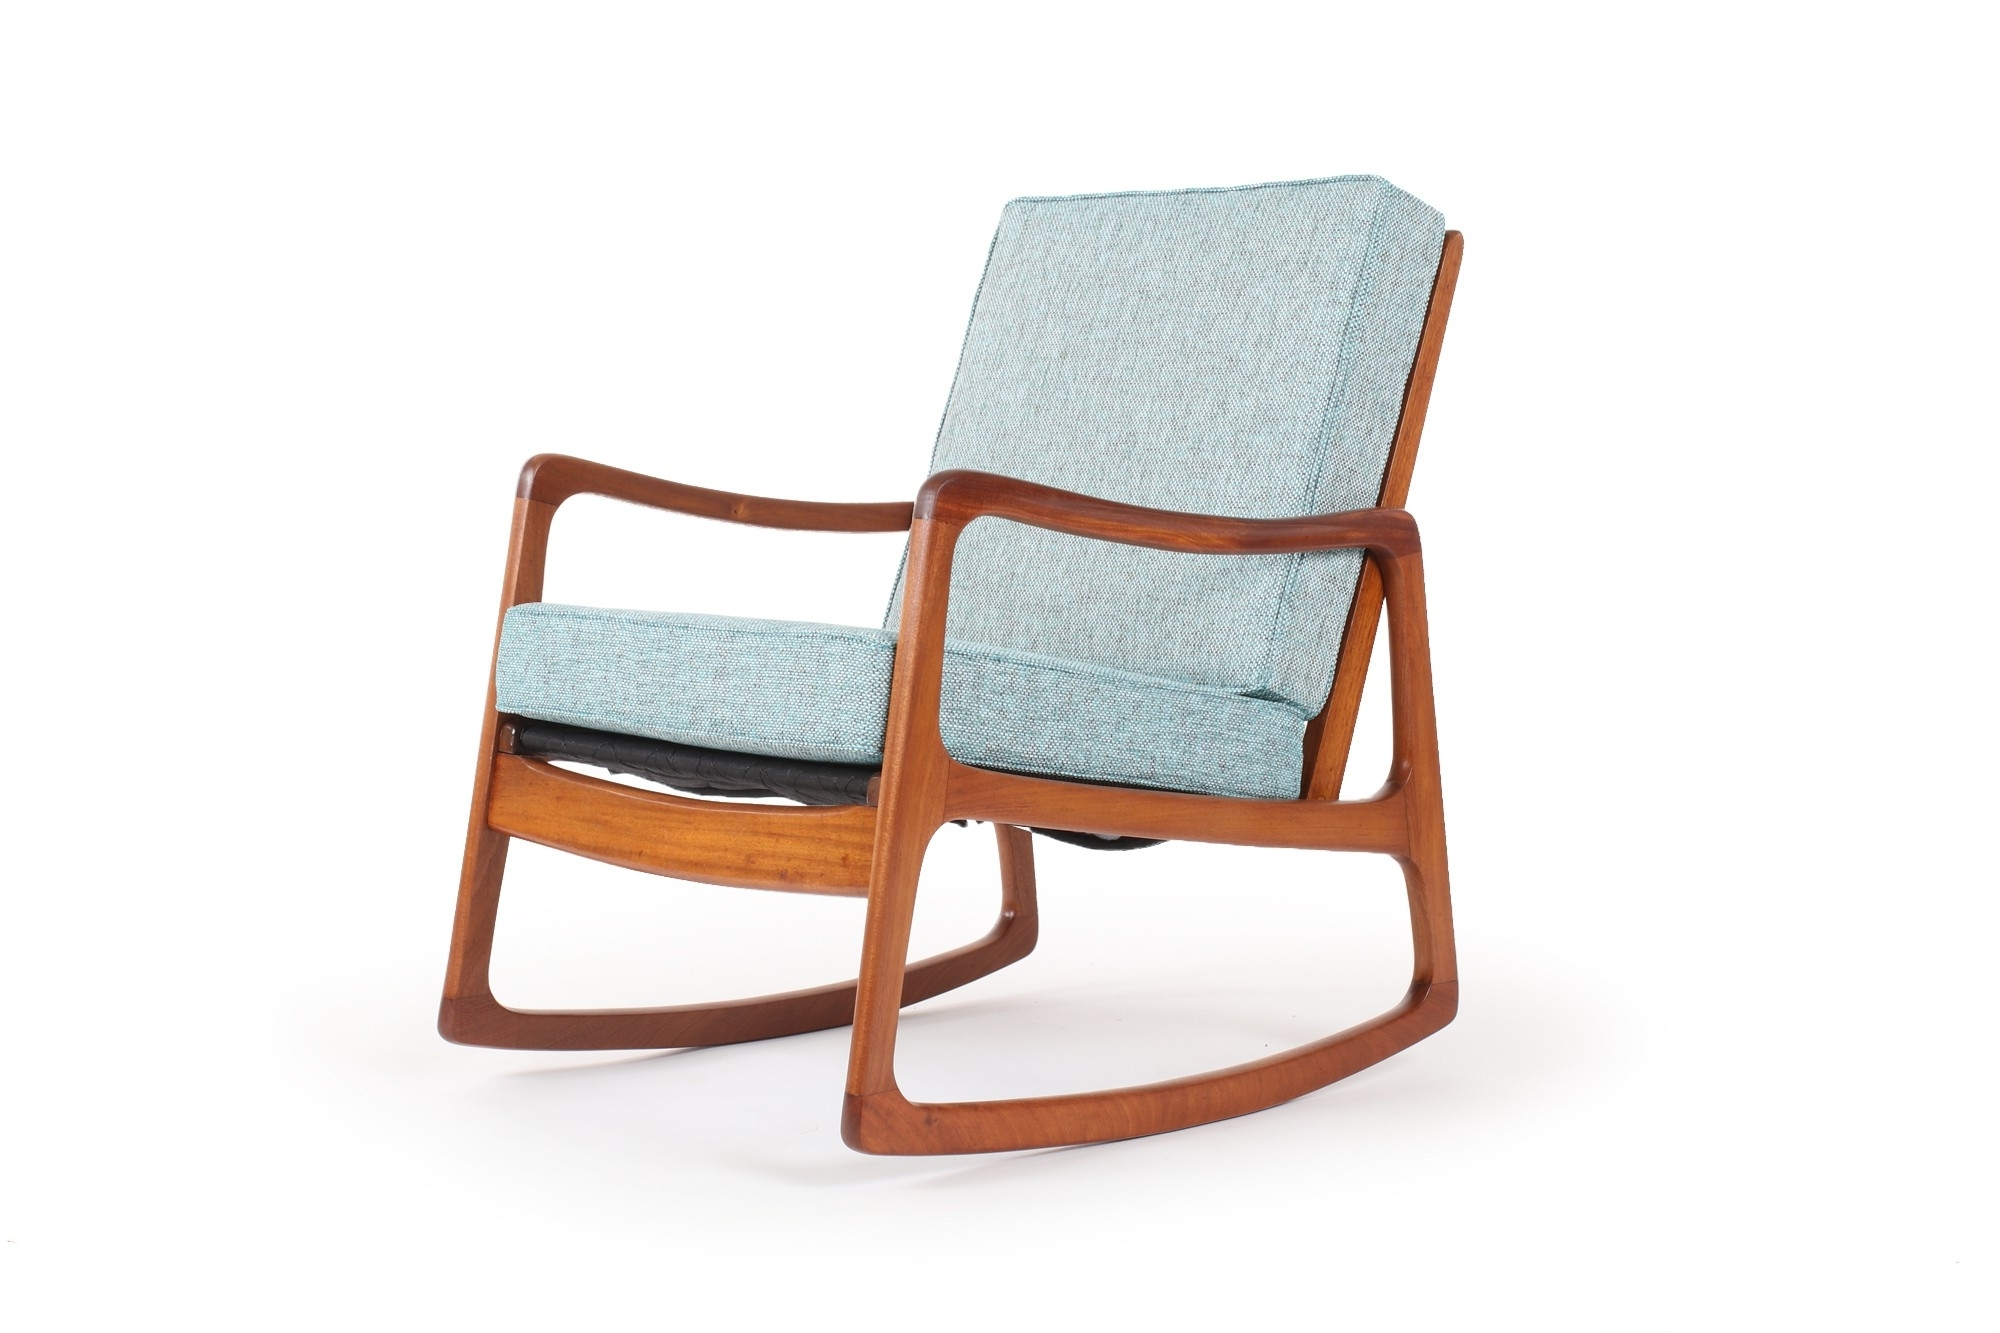 Retro Outdoor Rocking Chairs Intended For Widely Used Mr (View 13 of 20)